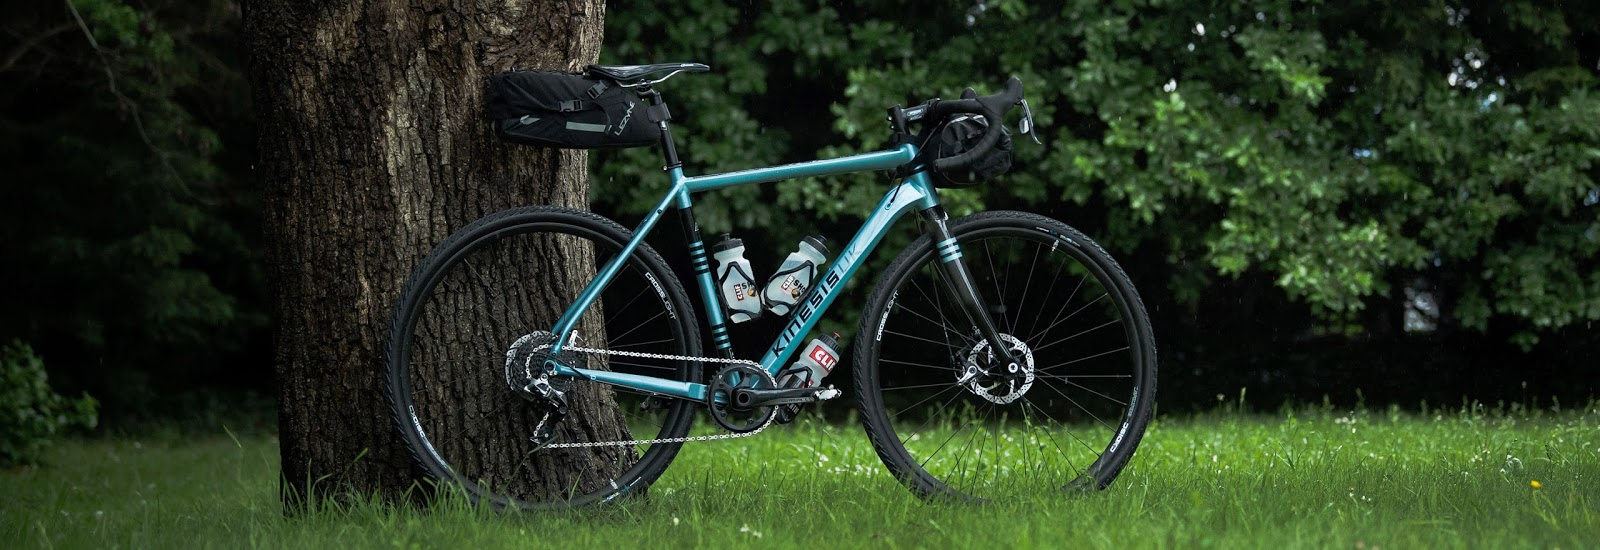 Kinesis Uk Launched Their New Tripster At Adventure Bike